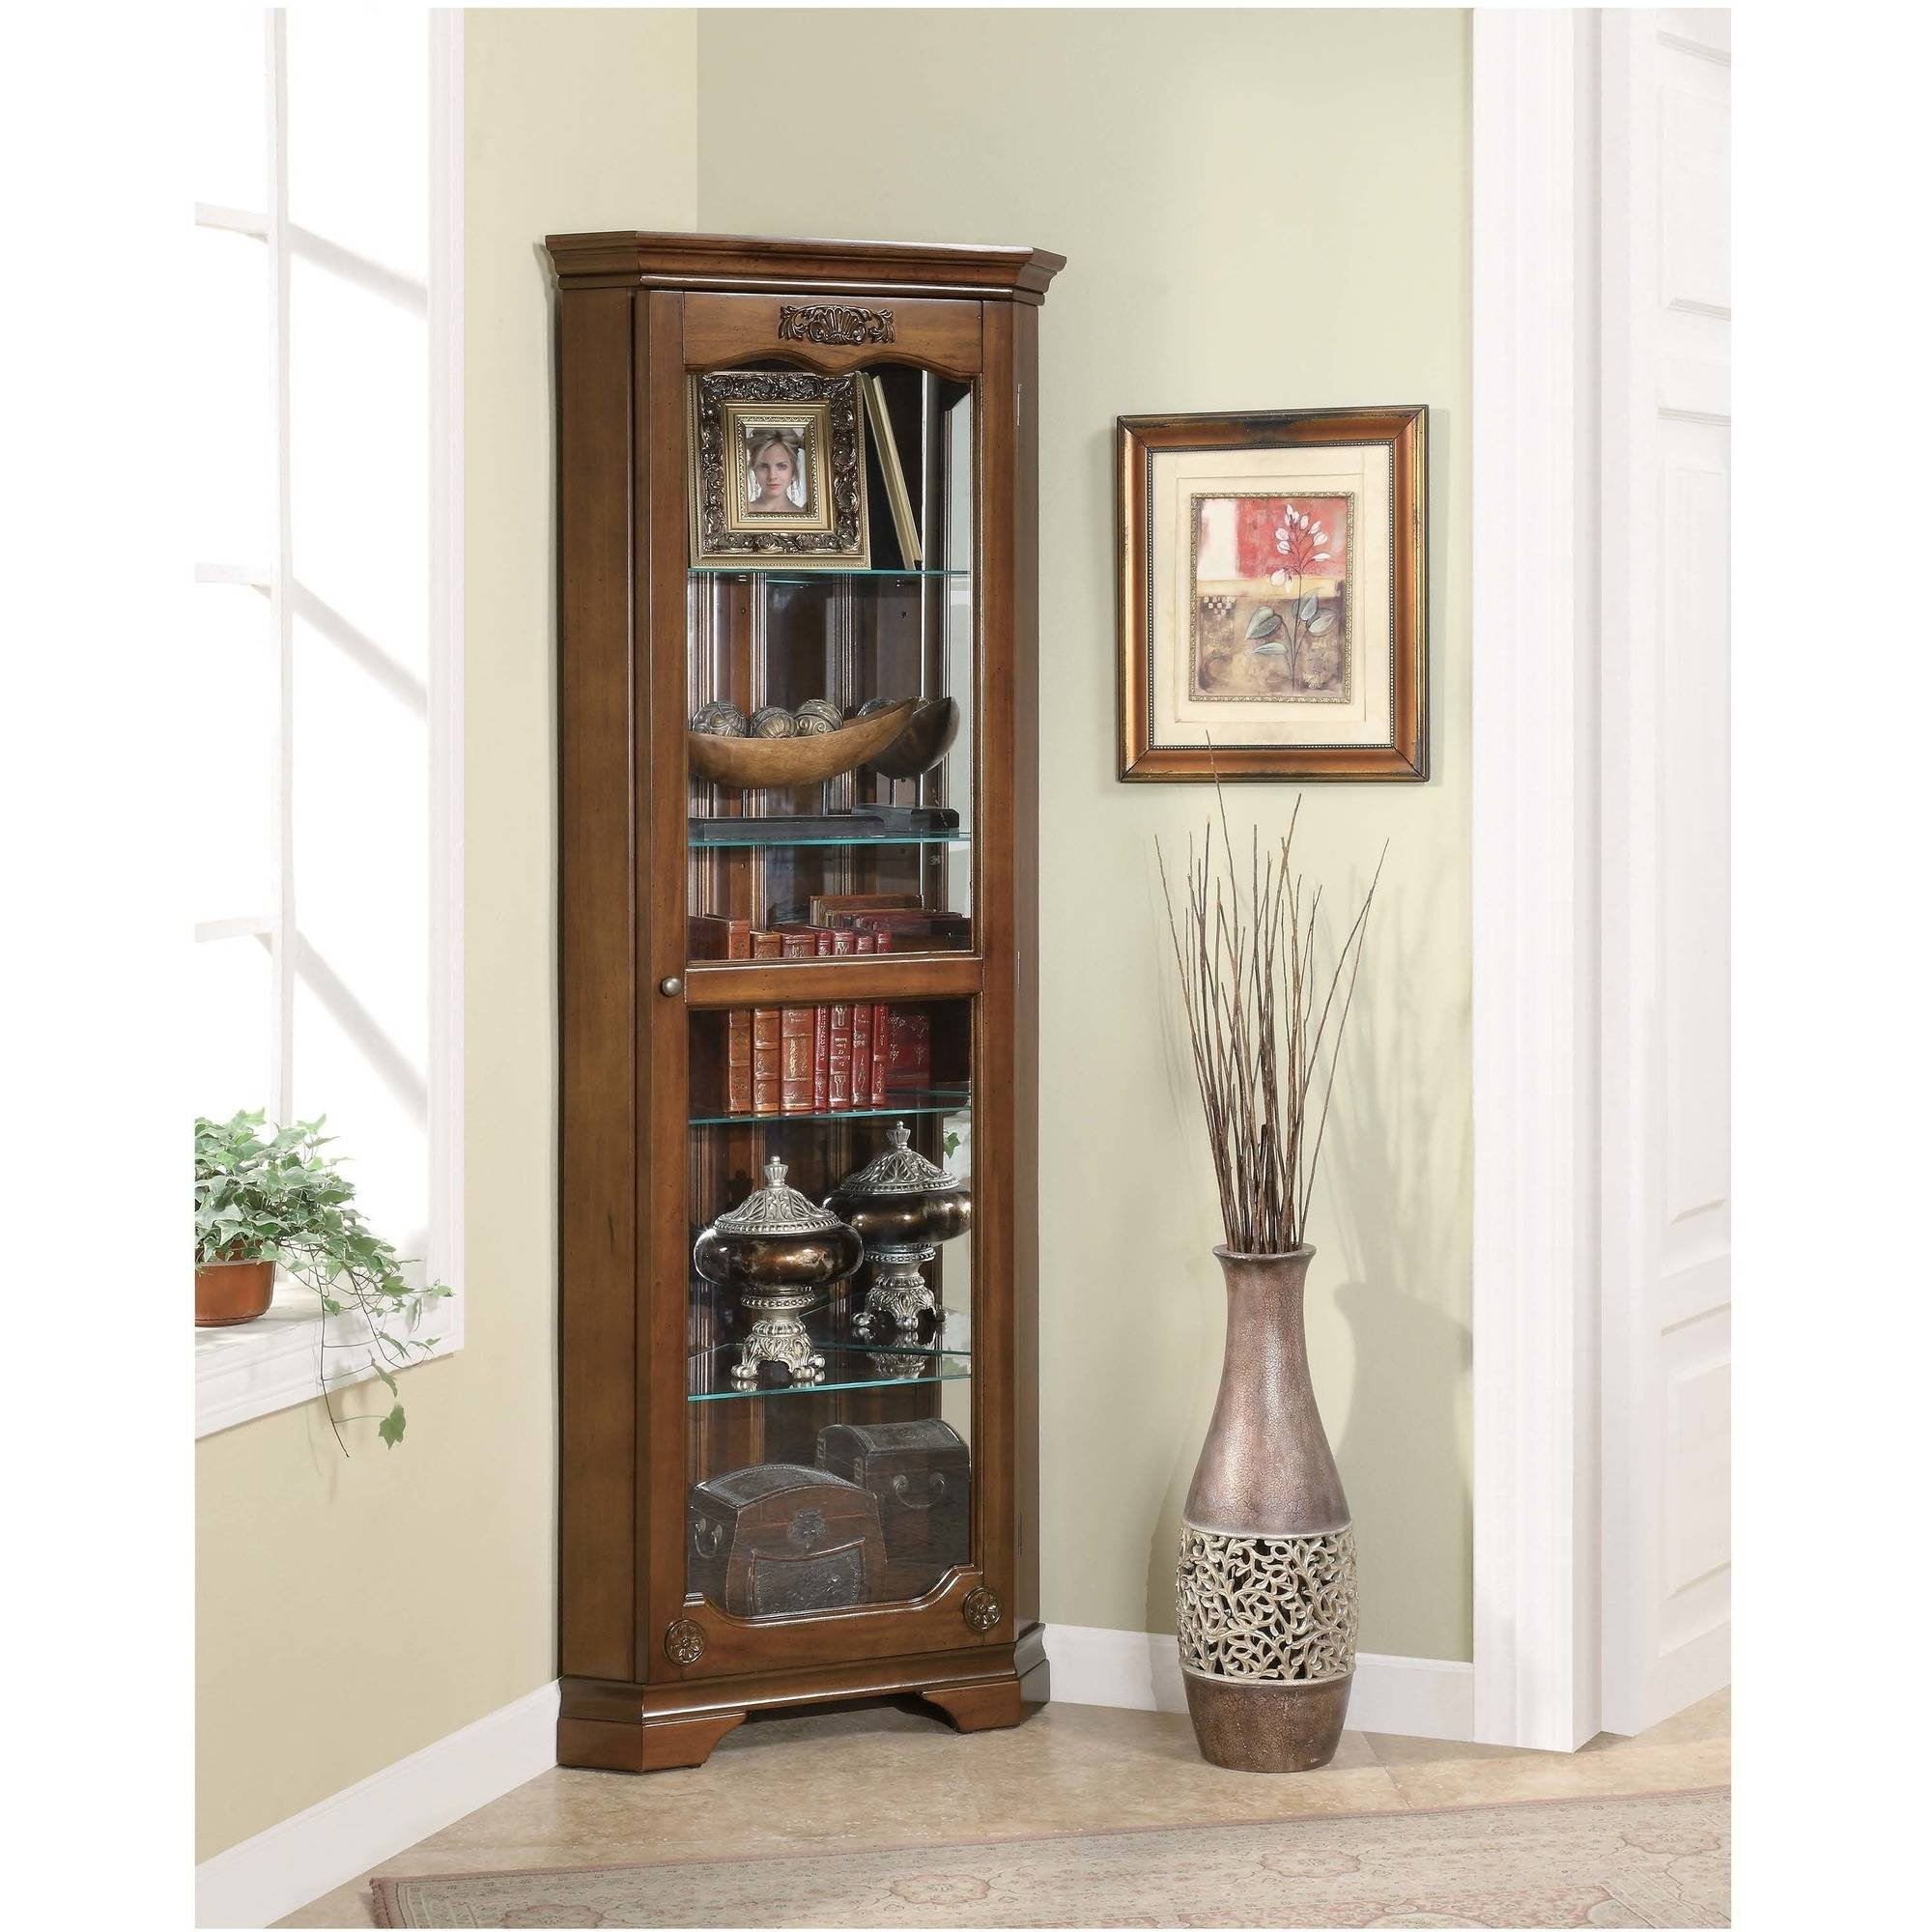 Corner Curio Cabinet in Golden Brown Living Room Bedroom Office Furniture Four Shelves Behind Glass Panel Made of Solid Wood by AVA Furniture